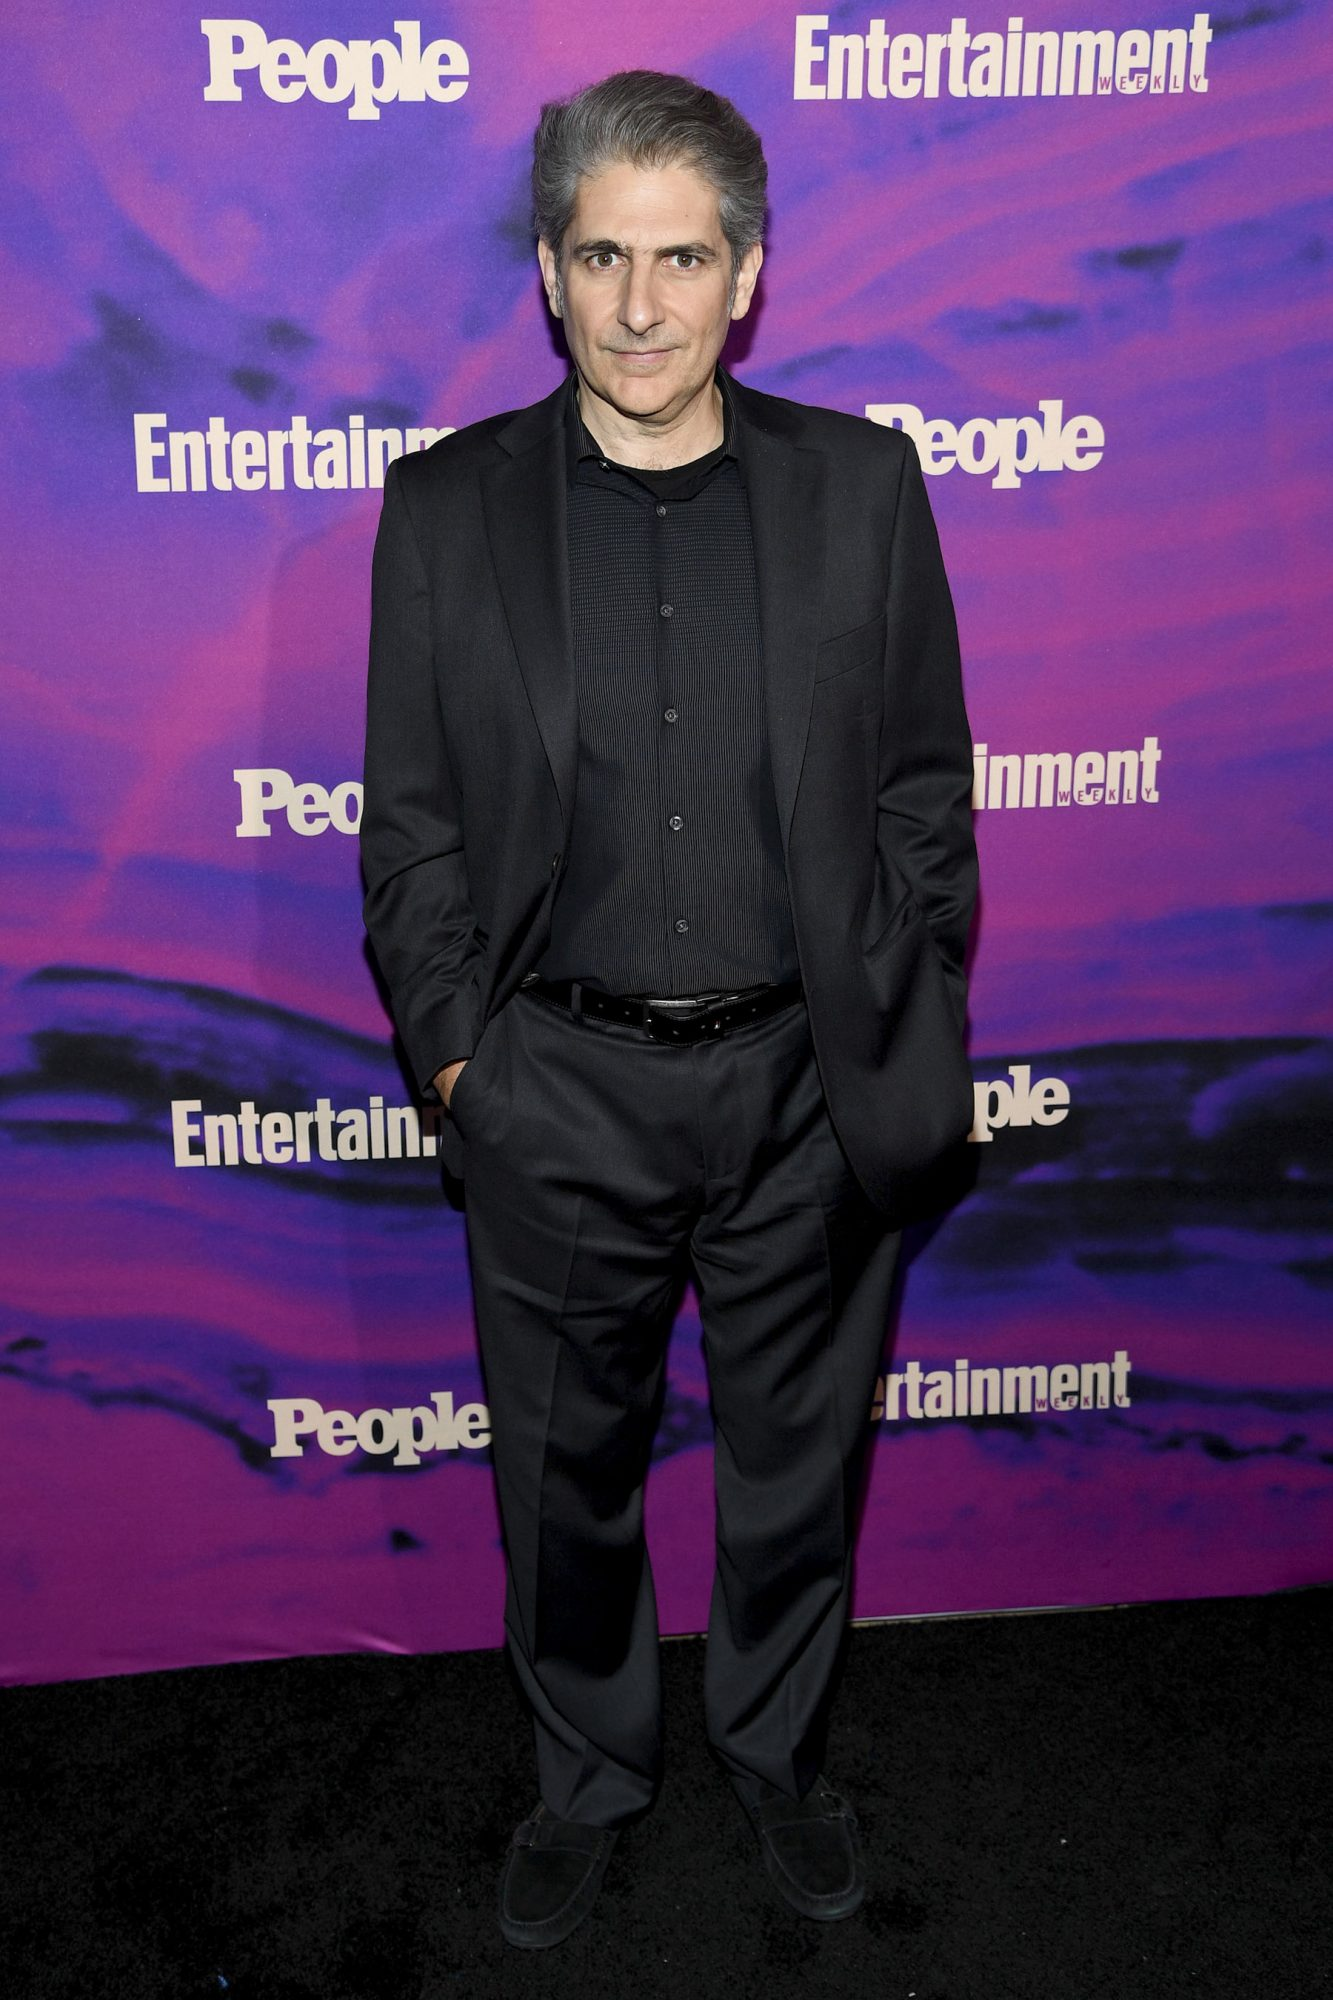 NEW YORK, NEW YORK - MAY 13: Michael Imperioli of Lincoln attends the Entertainment Weekly & PEOPLE New York Upfronts Party on May 13, 2019 in New York City. (Photo by Dimitrios Kambouris/Getty Images for Entertainment Weekly & PEOPLE)